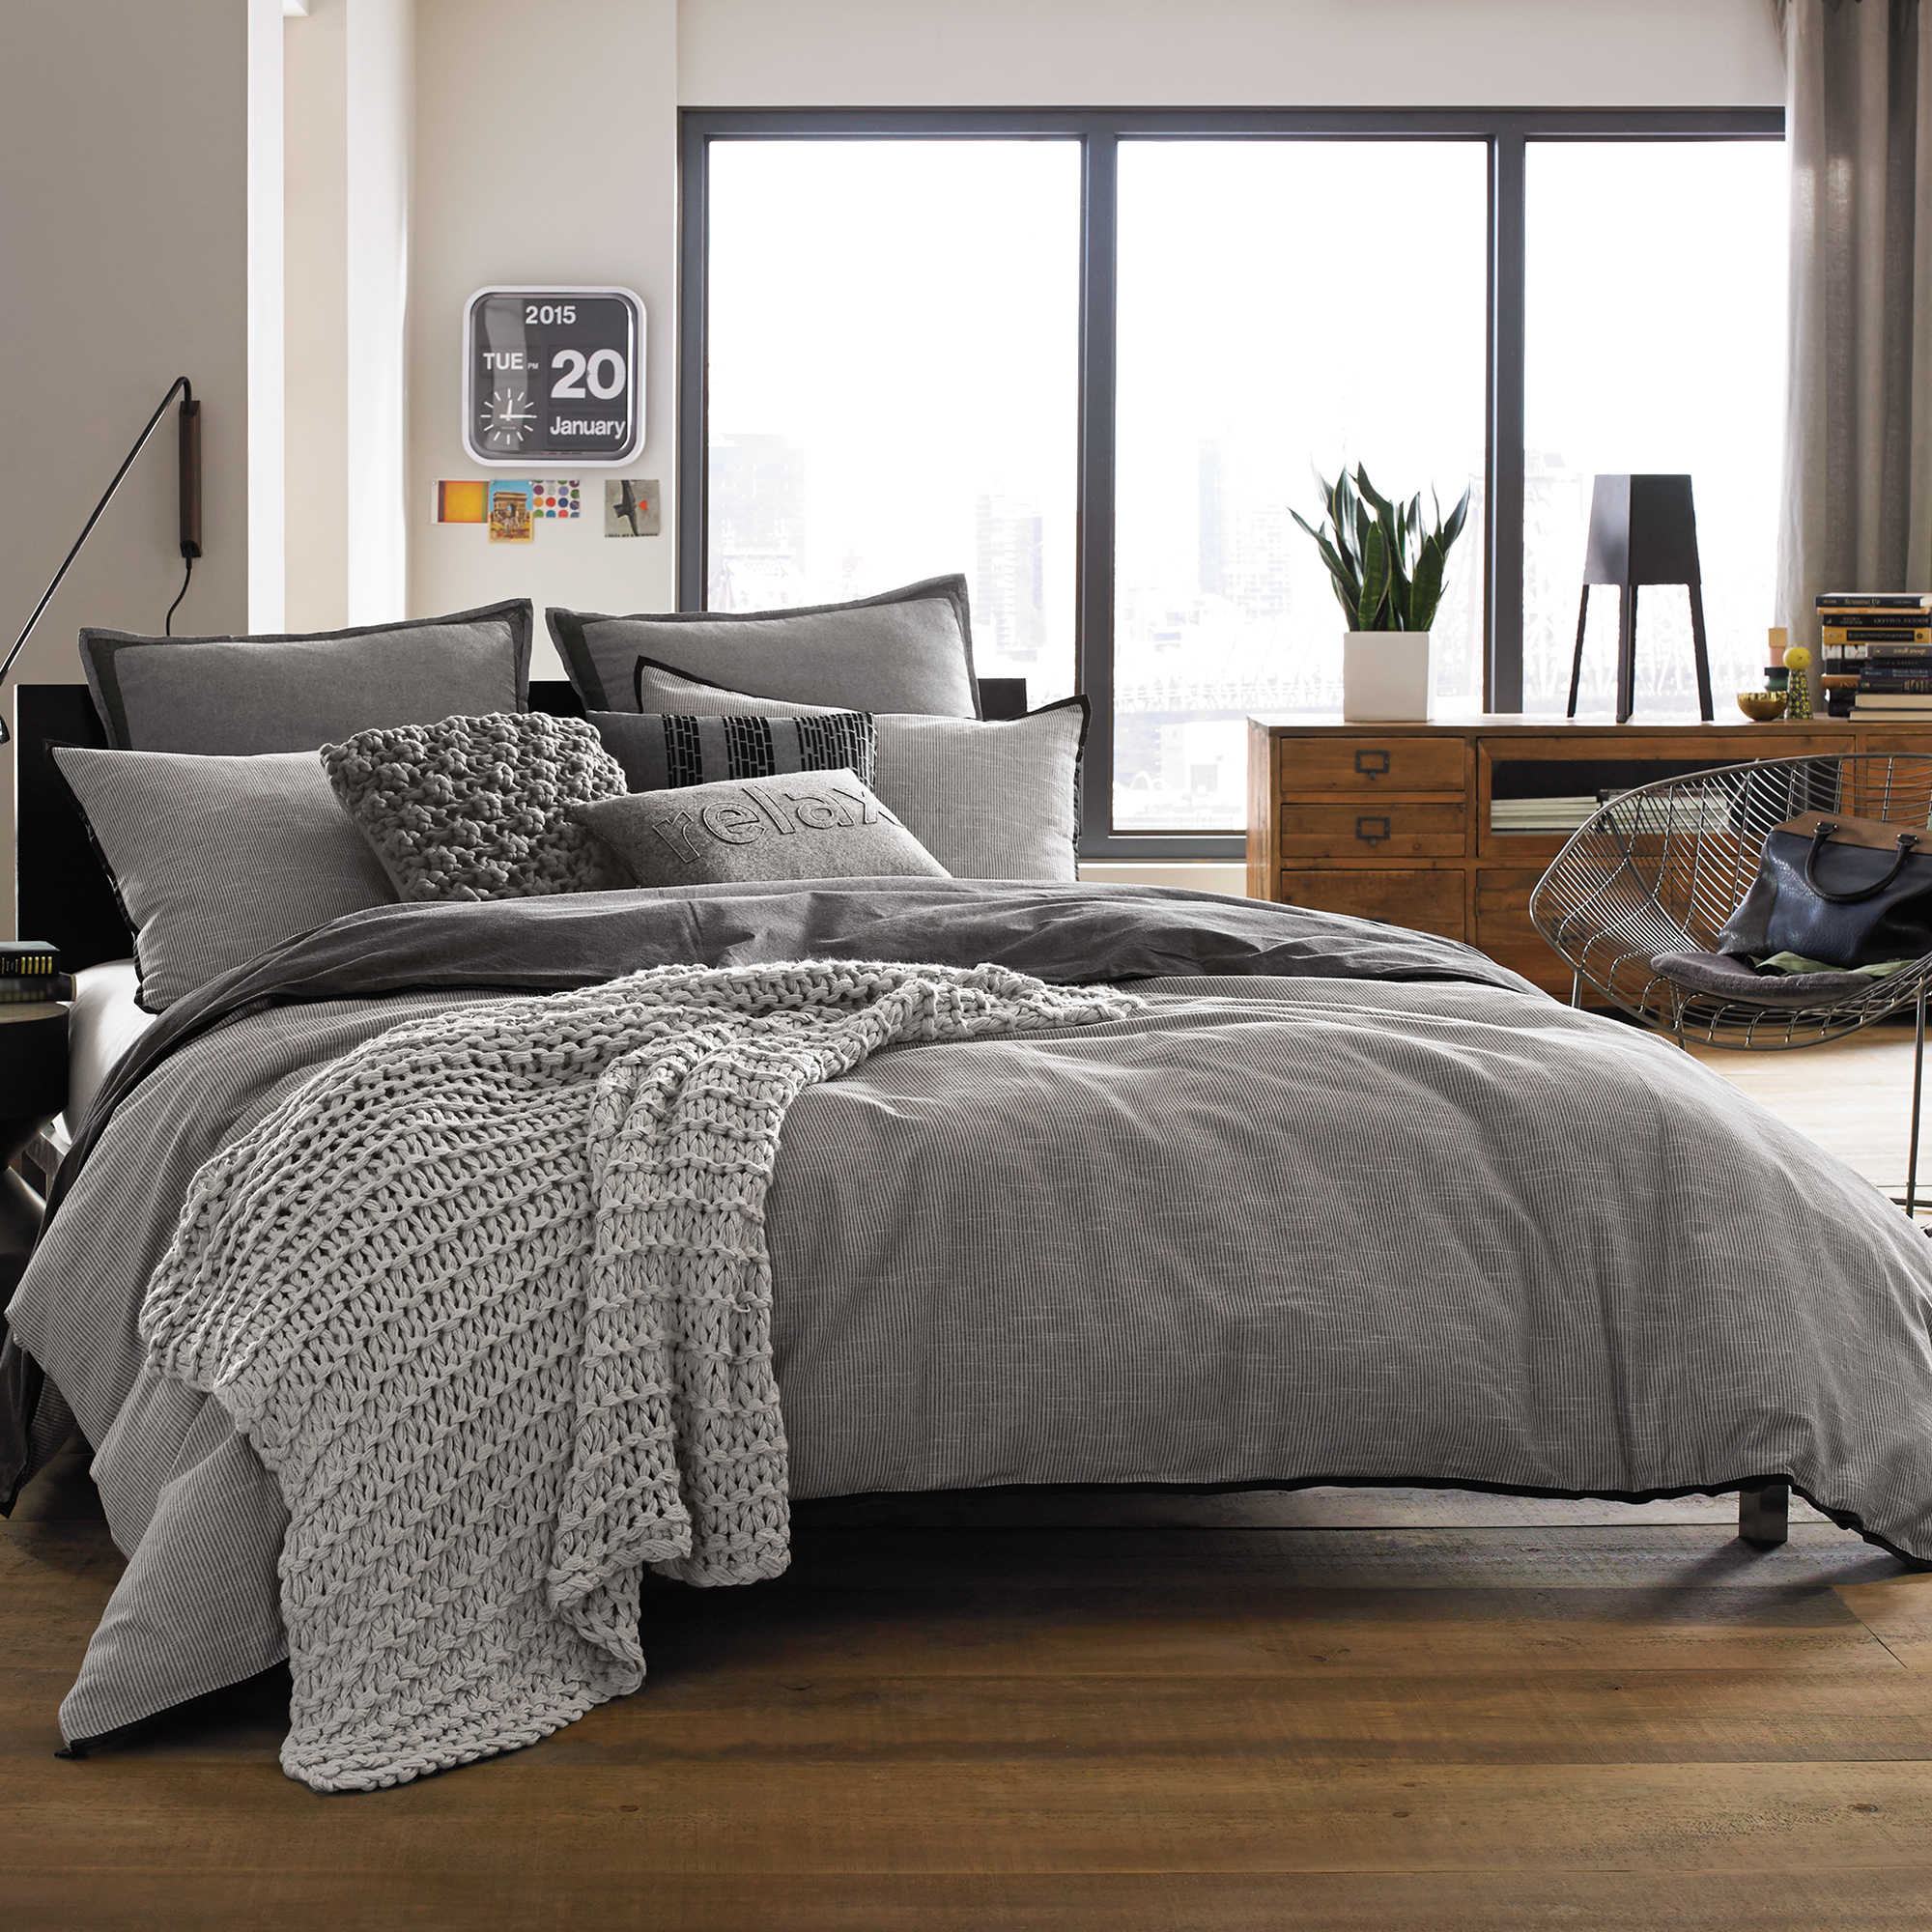 kenneth cole reaction home oxford duvet cover in grey stripe  bed  - kenneth cole reaction home oxford duvet cover in grey stripe